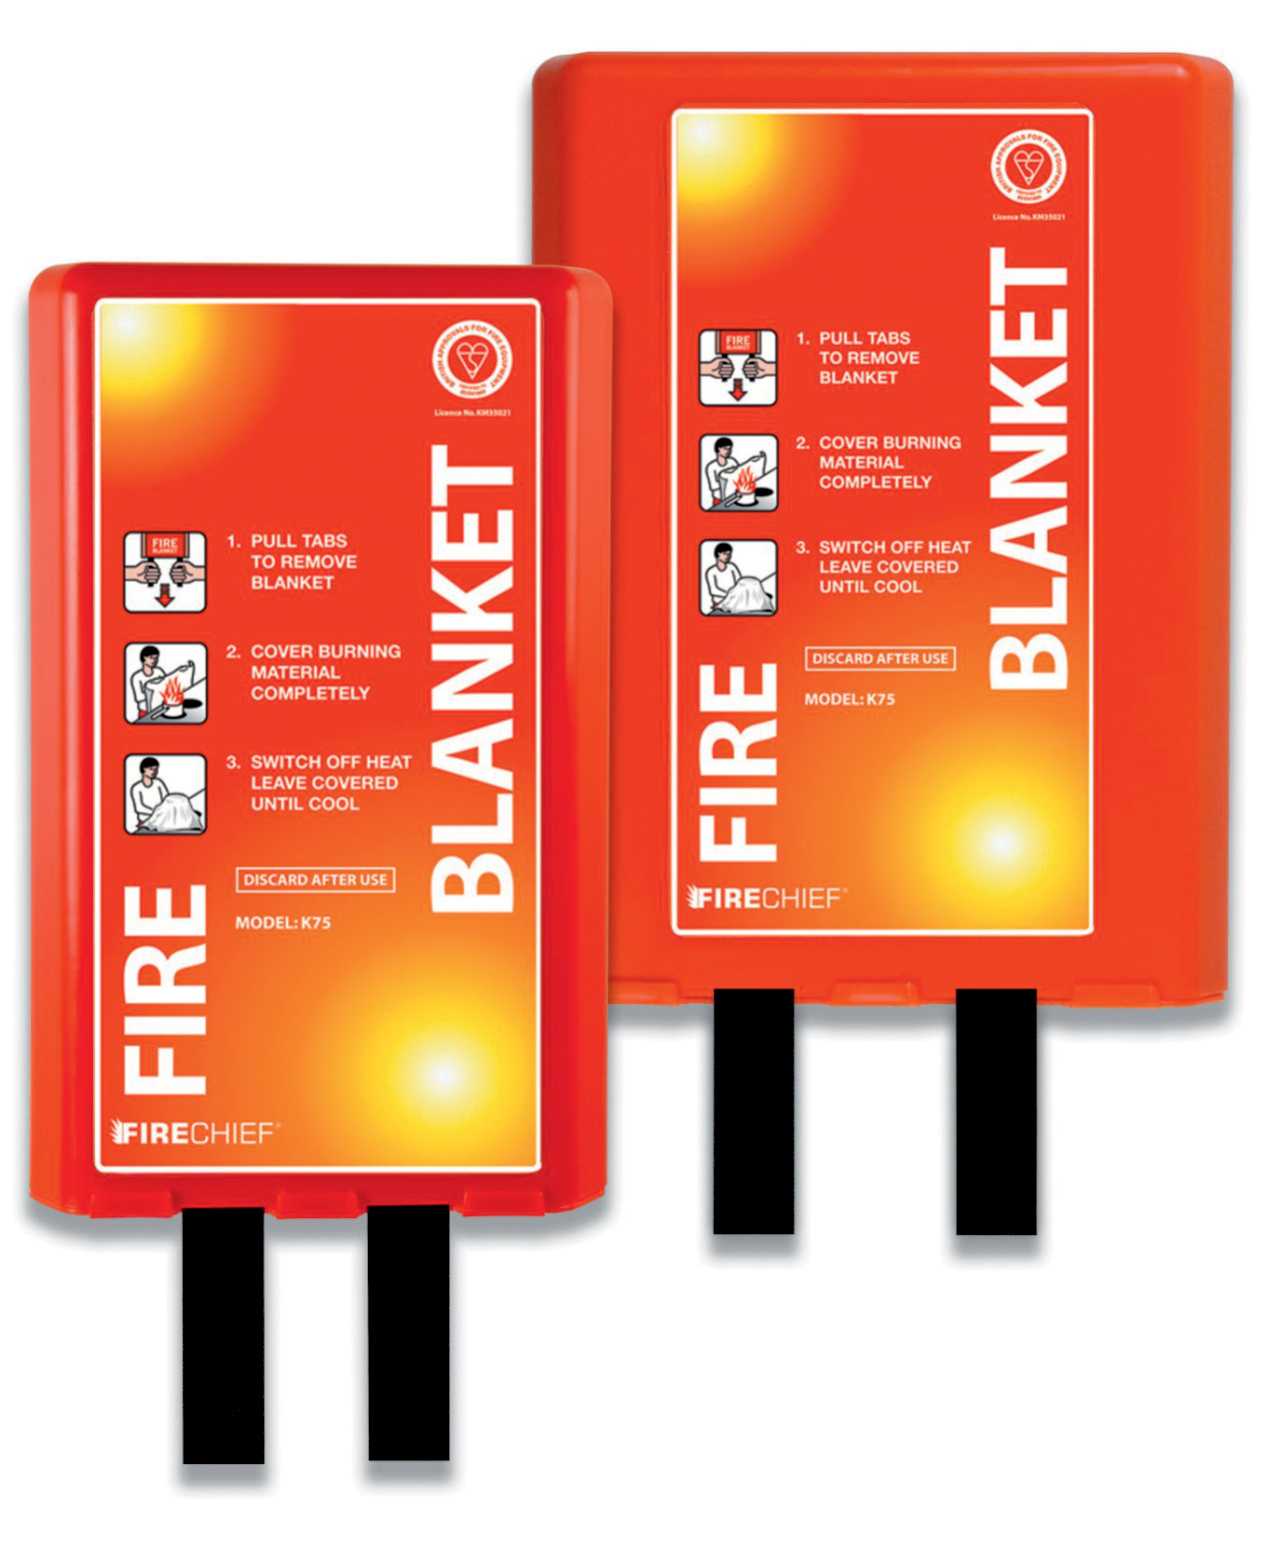 UK Fire Blanket Fire Extinguisher & Equipment